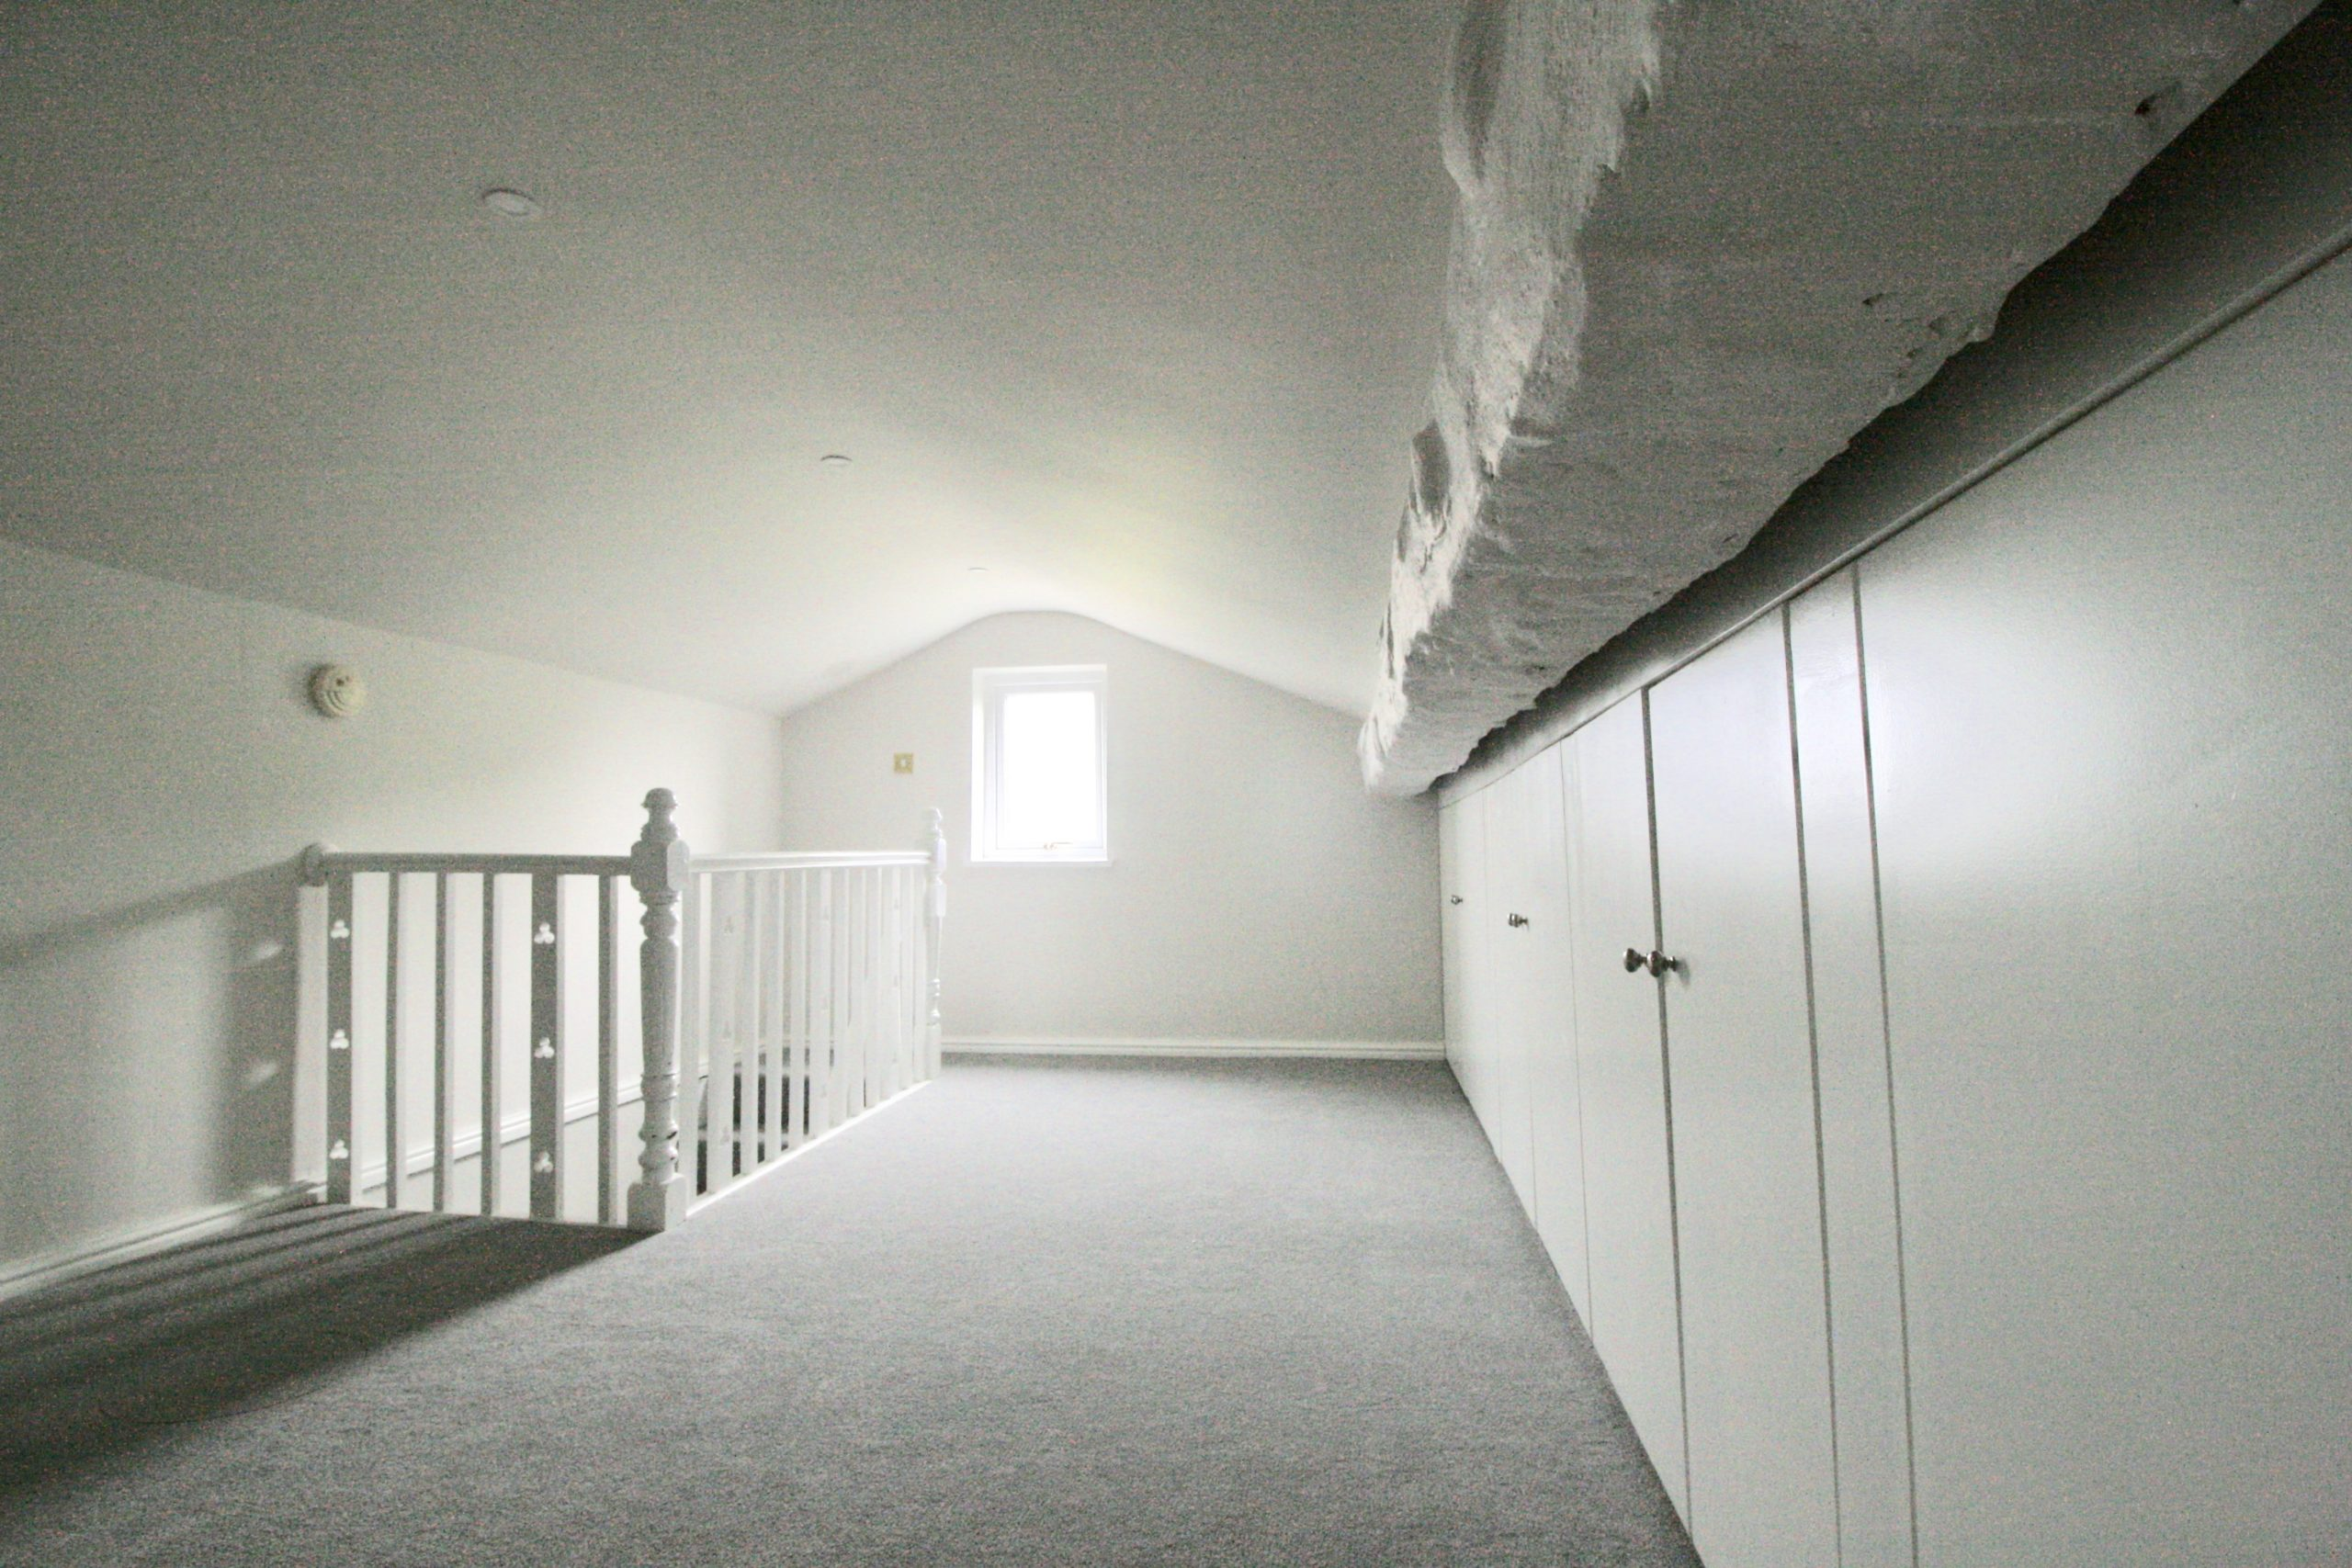 New office space with additional storage in loft space above TV room with grey and white decor